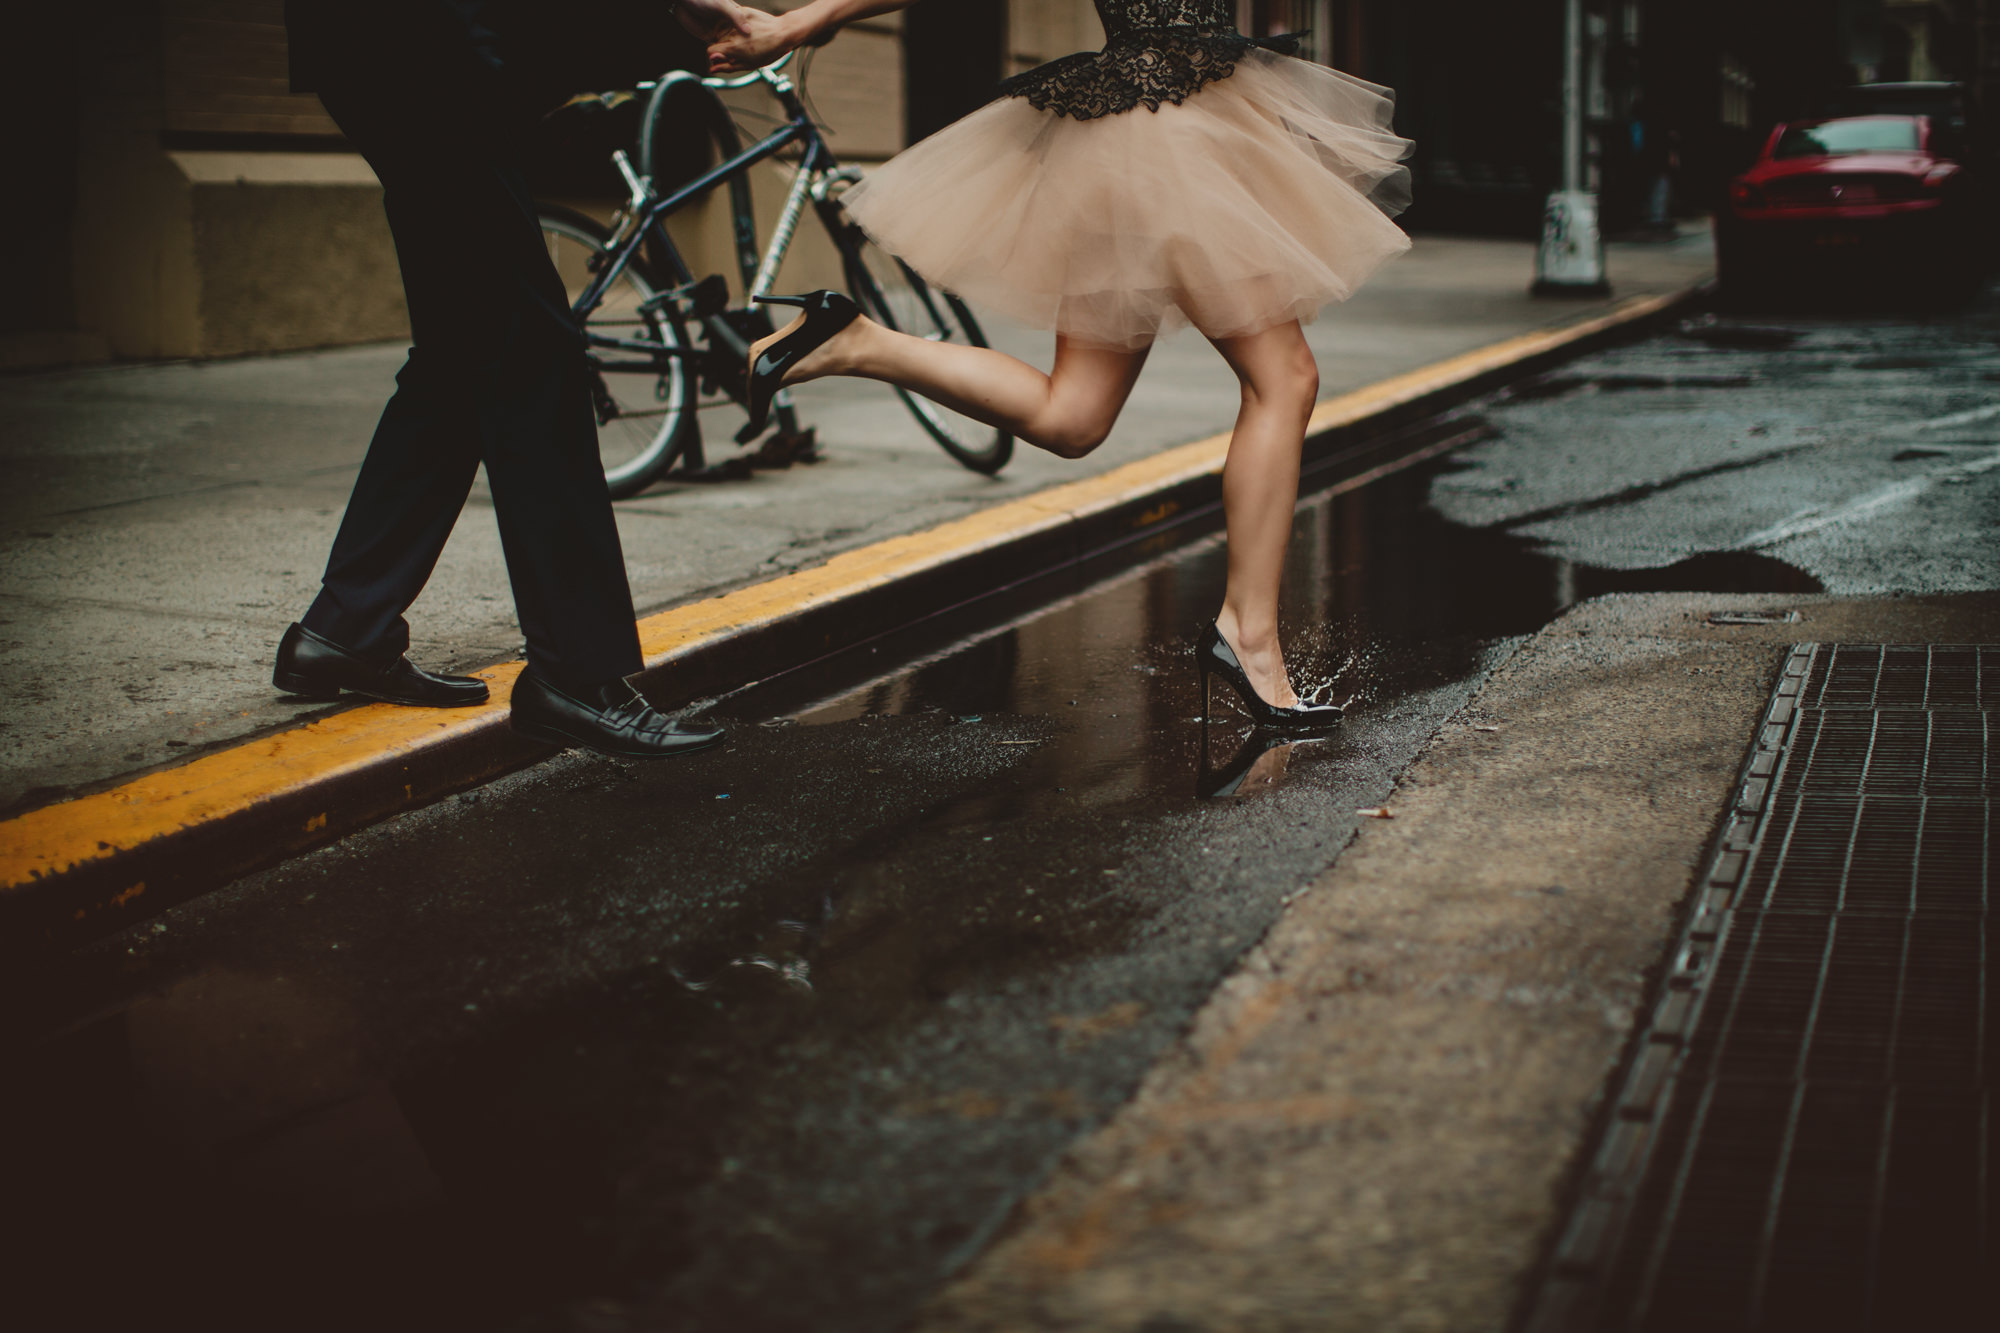 Bride steps into street wearing pumps and blush tulle miniskirt - photo by McClintock Photography Agency